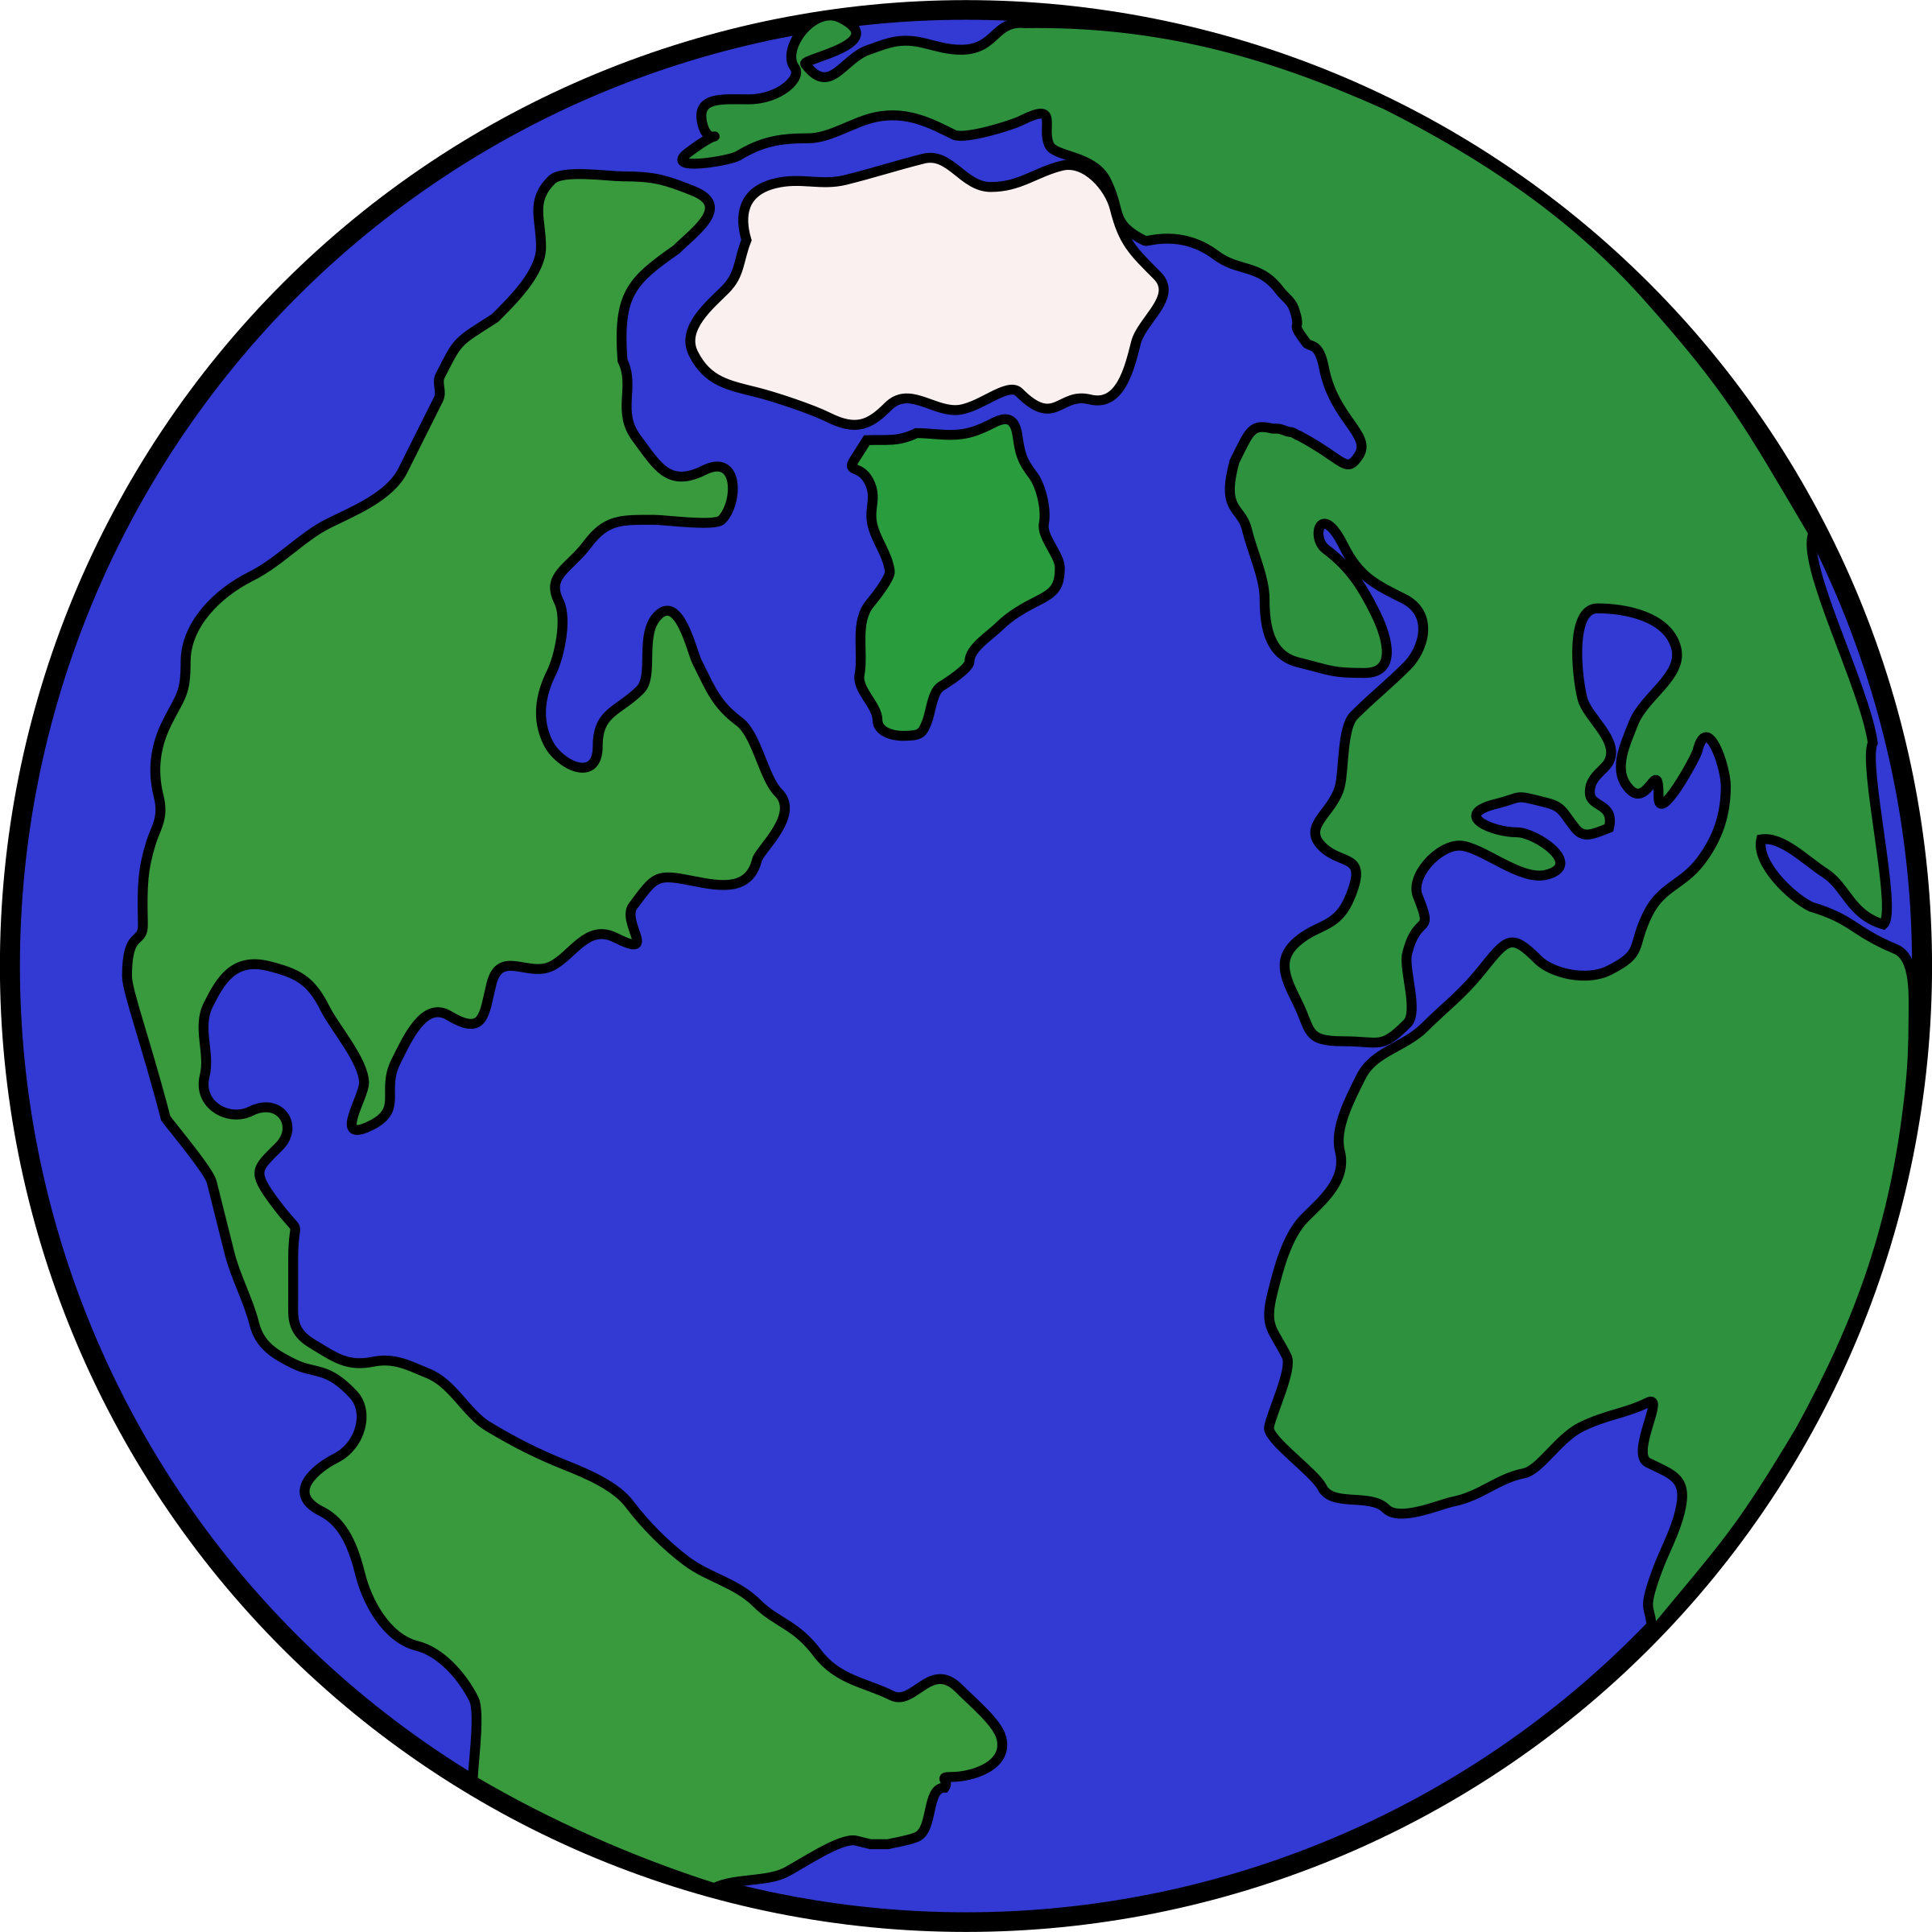 2400x2400 Planet Clip Art Hostted